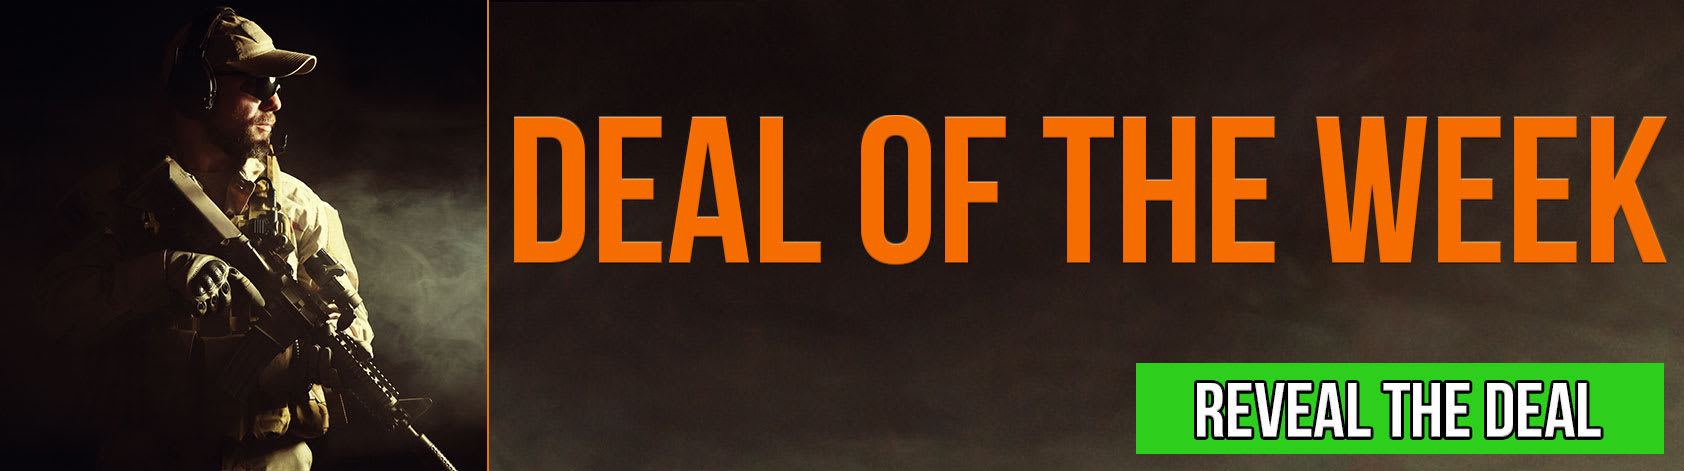 Check out the deal of the week